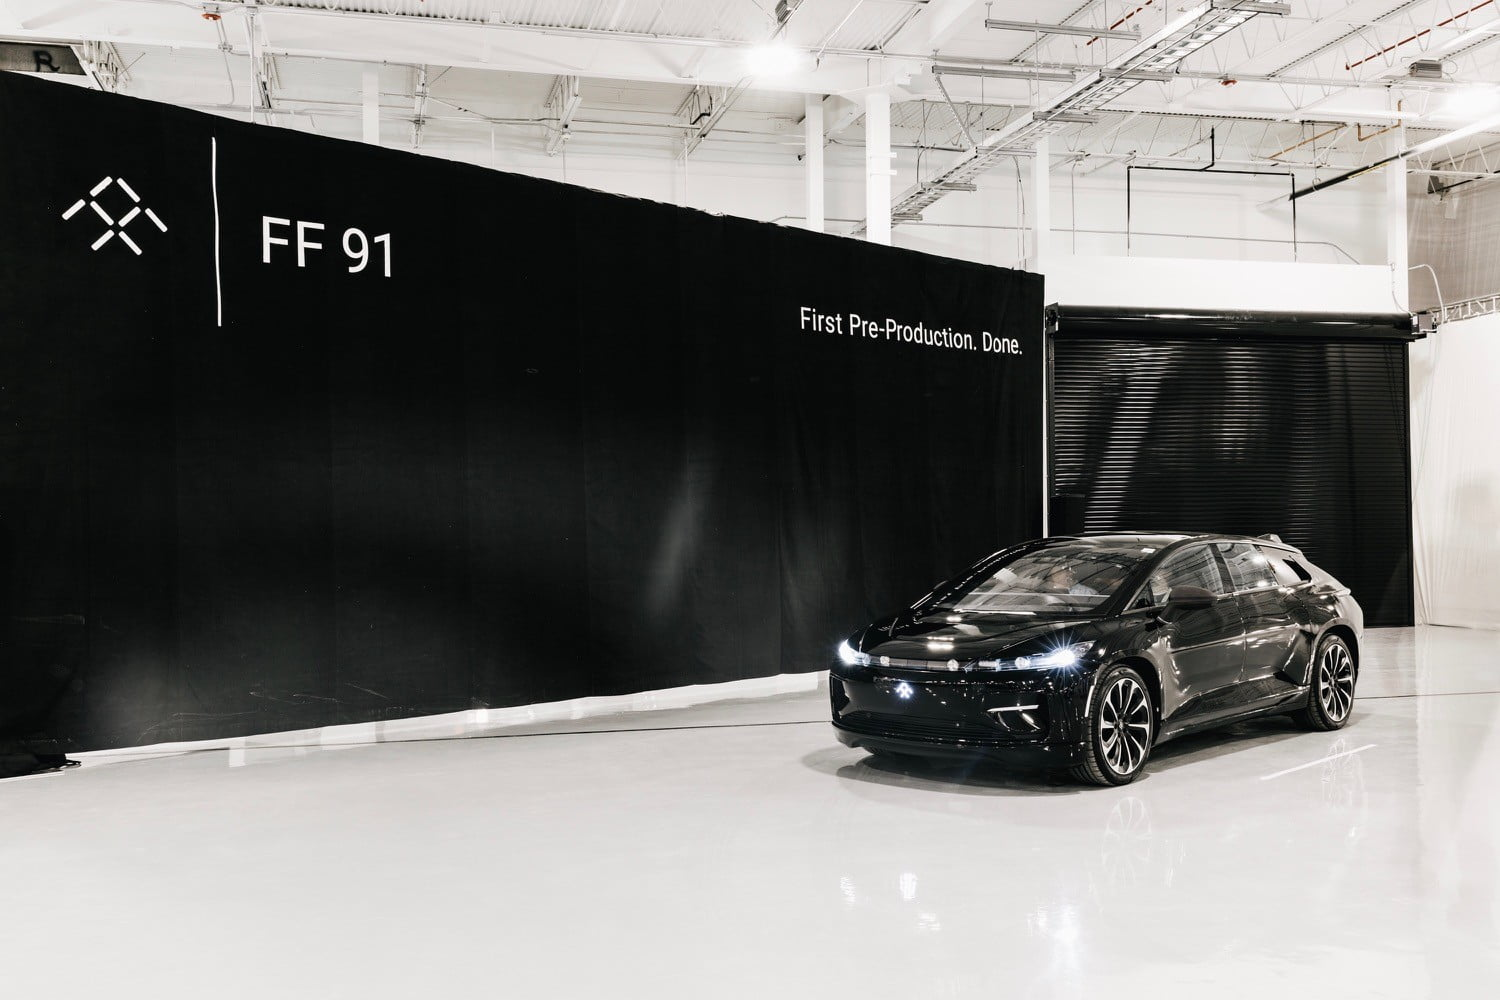 Faraday Future Completes First Preproduction Ff 91 Electric Vehicle Digital Trends